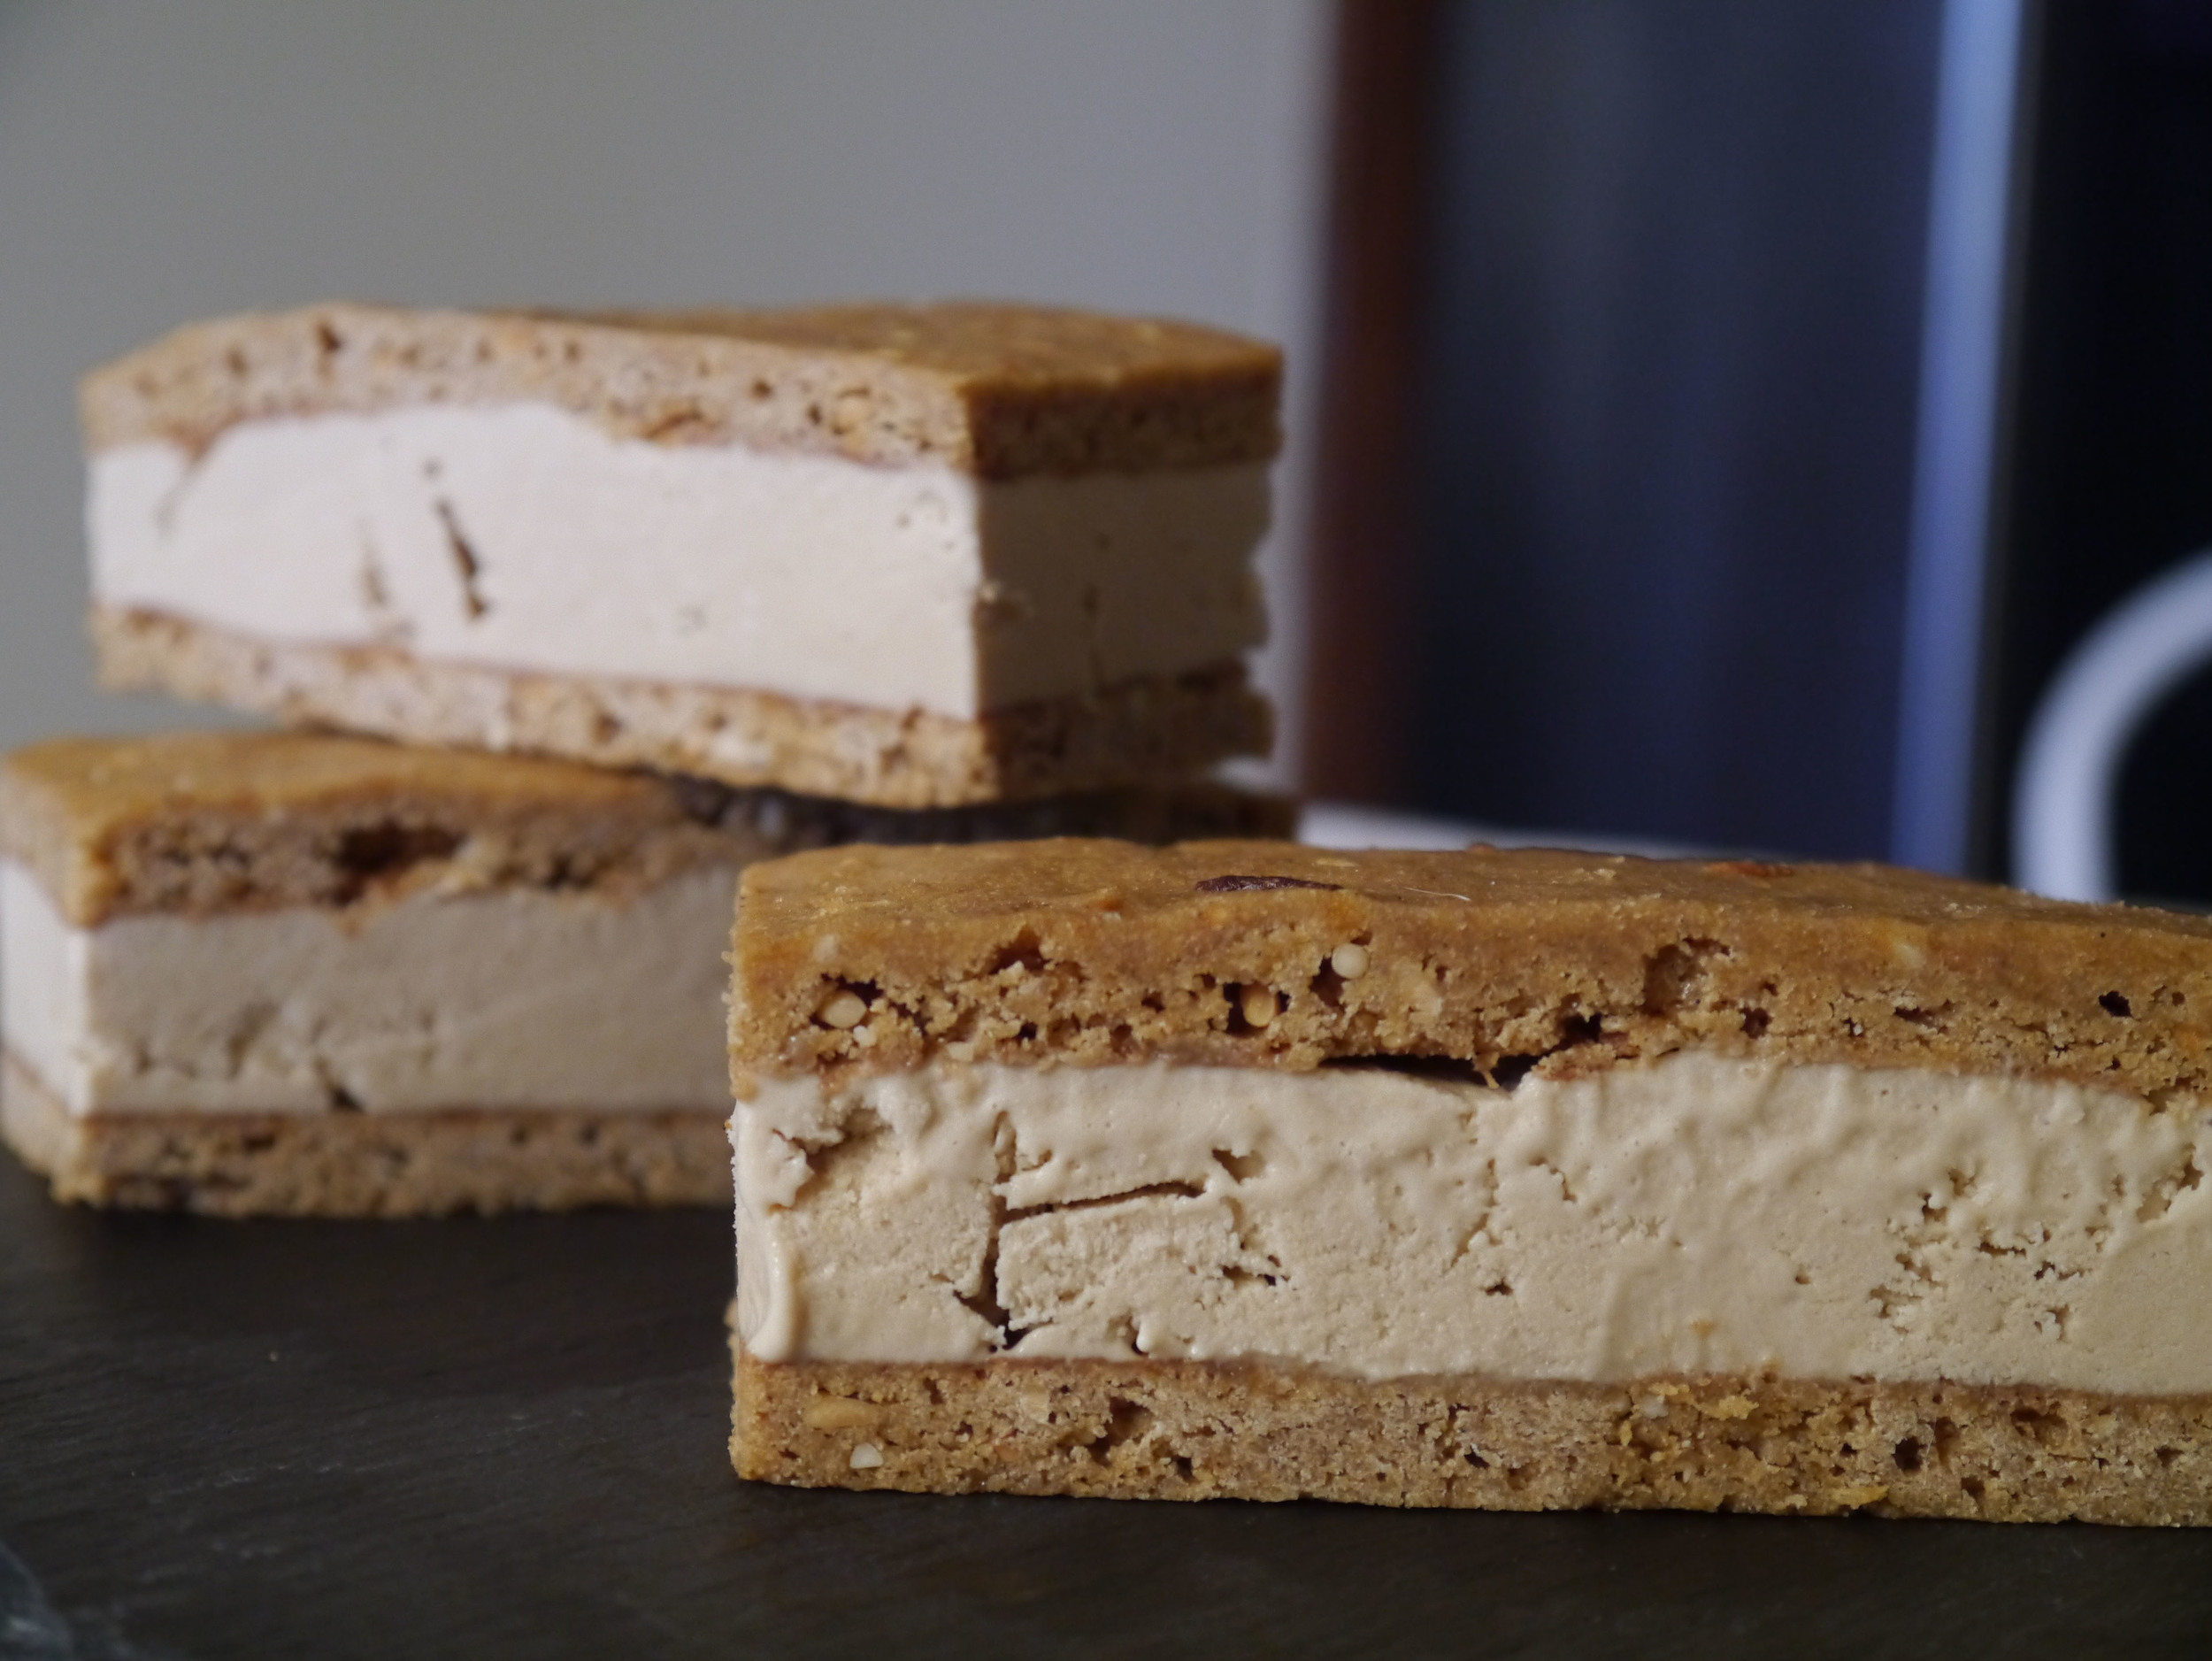 Peanut Butter & Roasted Banana Ice Cream Sandwiches 2